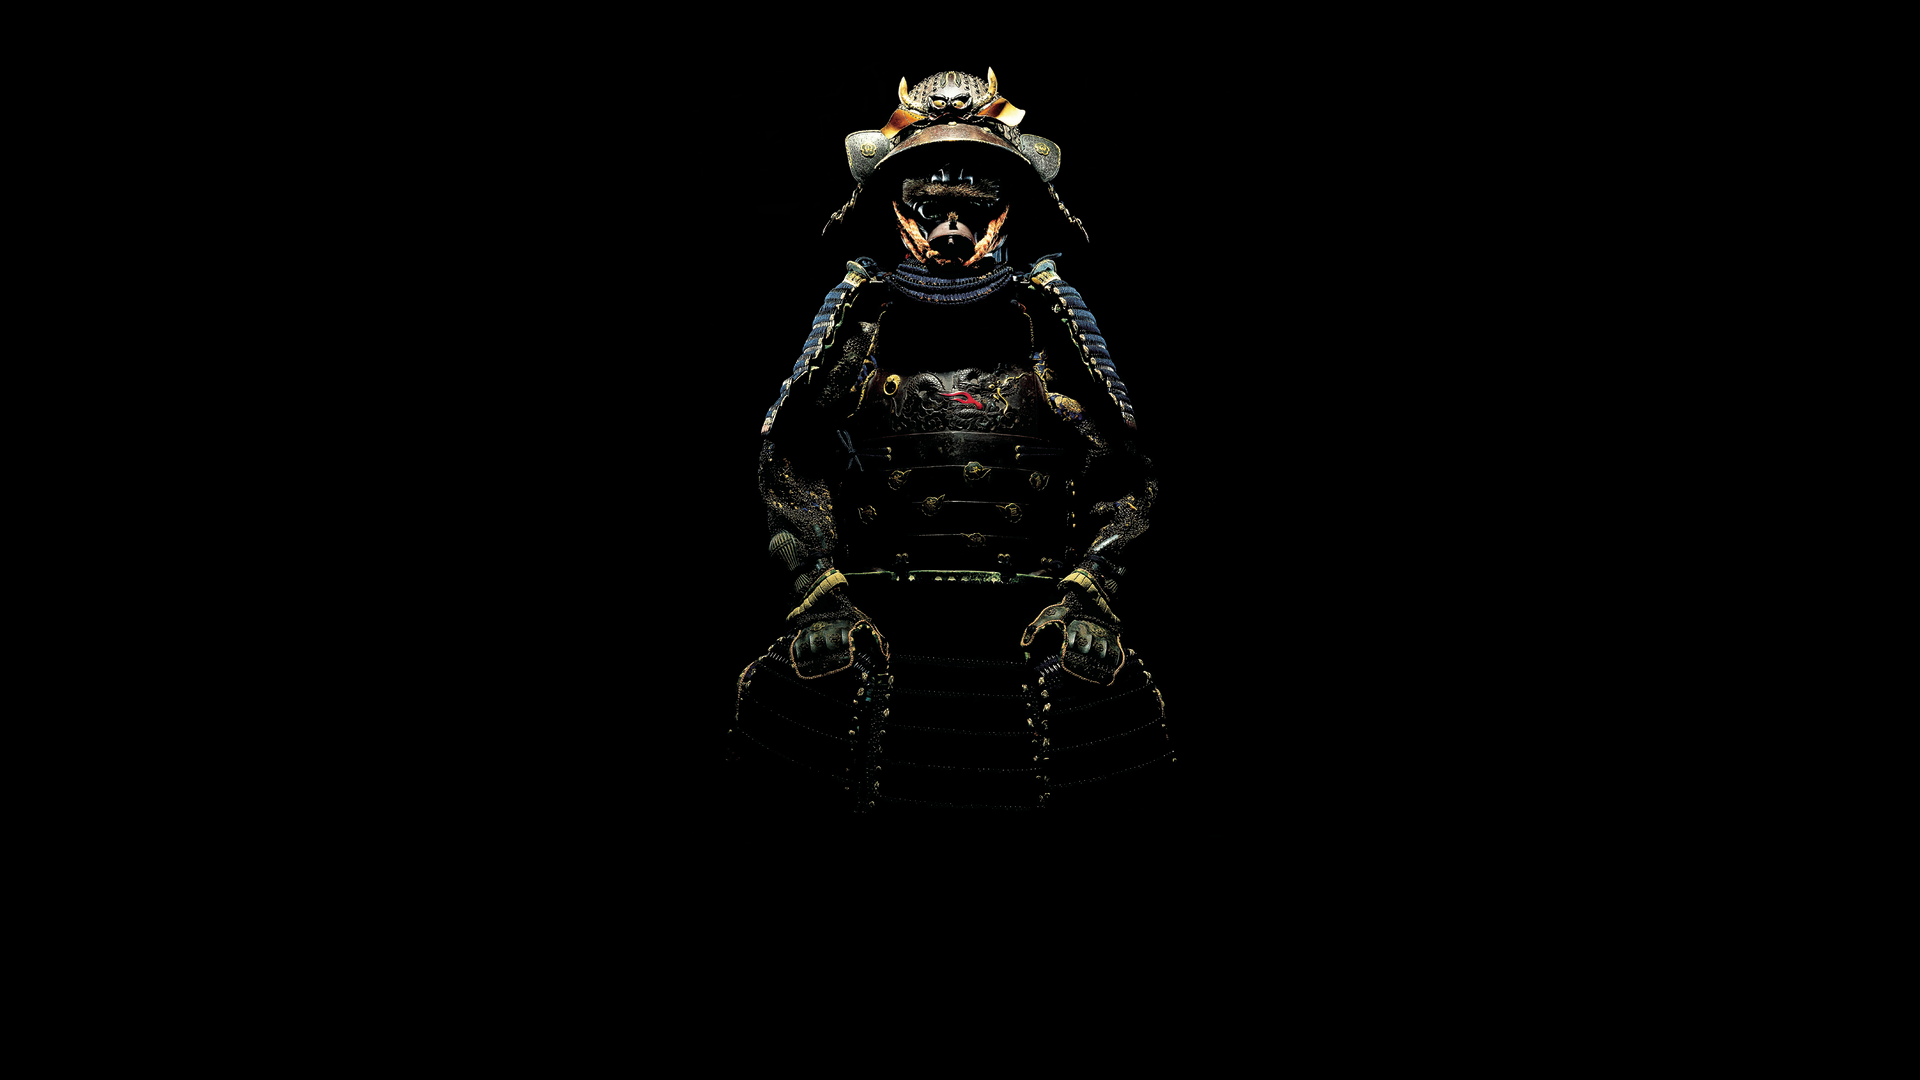 Samurai Wallpaper Desktop #h4477511, 0.31 Mb